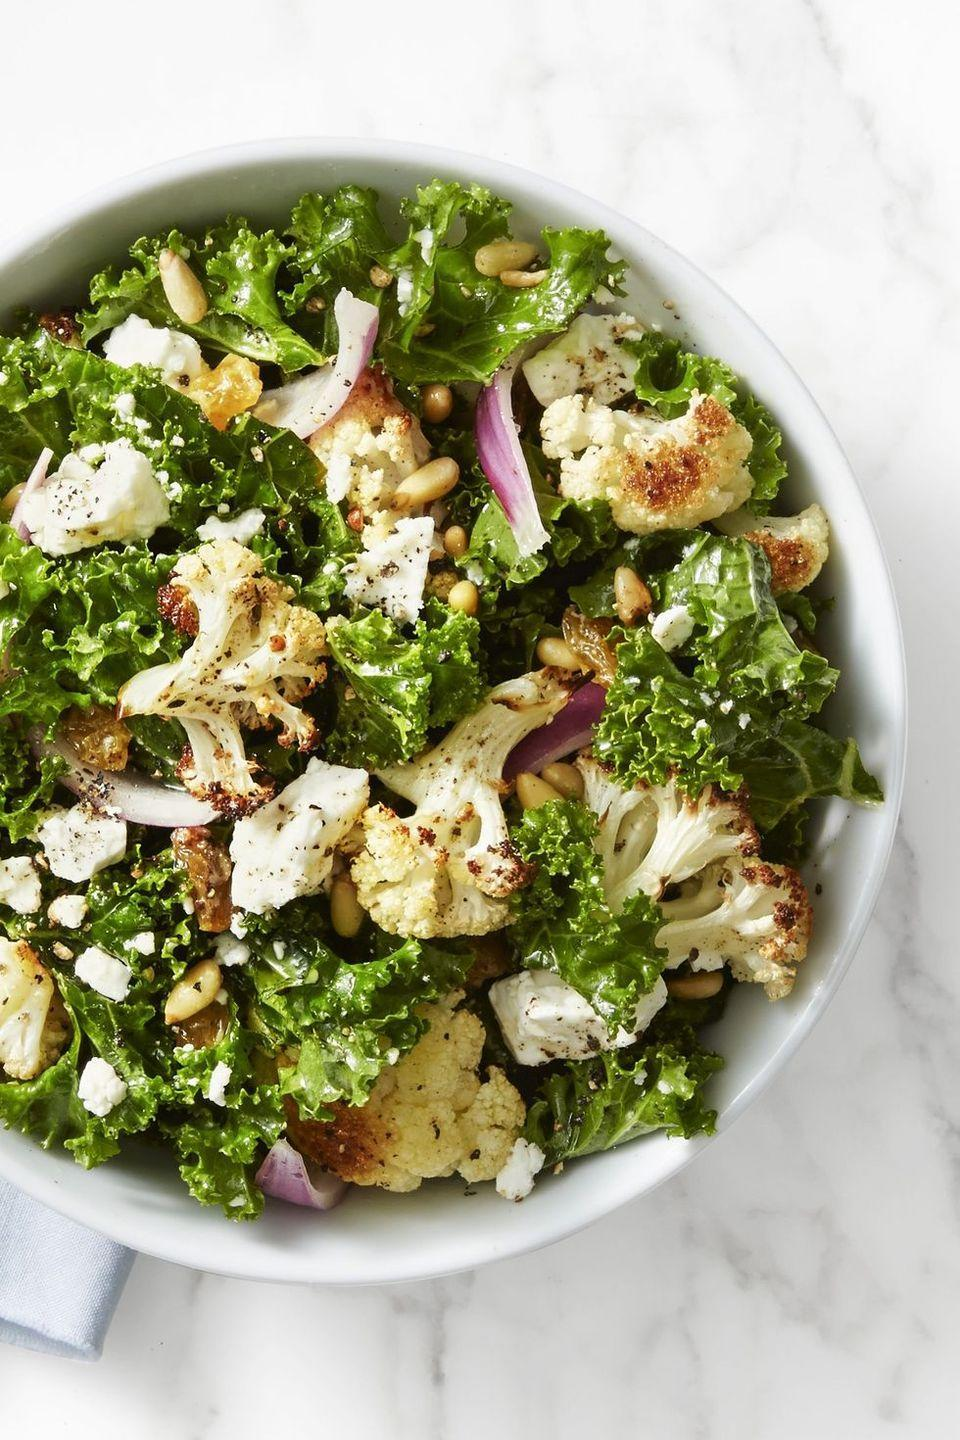 """<p>Packed with roasted cauliflower, feta cheese, golden raisins and pine nuts, this salad is a delicious way to get some nutrients onto your holiday table. Leave out the cheese if you're pairing this with a roast!</p><p><em><a href=""""https://www.goodhousekeeping.com/food-recipes/easy/a42424/kale-roasted-cauliflower-salad-recipe/"""" rel=""""nofollow noopener"""" target=""""_blank"""" data-ylk=""""slk:Get the recipe for Kale and Roasted Cauliflower Salad »"""" class=""""link rapid-noclick-resp"""">Get the recipe for Kale and Roasted Cauliflower Salad »</a></em></p><p><strong>RELATED: </strong><a href=""""https://www.goodhousekeeping.com/food-recipes/healthy/g31116887/spring-salads/"""" rel=""""nofollow noopener"""" target=""""_blank"""" data-ylk=""""slk:33 Fresh, Colorful Spring Salads That'll Make It Easy to Eat Your Veggies"""" class=""""link rapid-noclick-resp"""">33 Fresh, Colorful Spring Salads That'll Make It Easy to Eat Your Veggies</a><br></p>"""